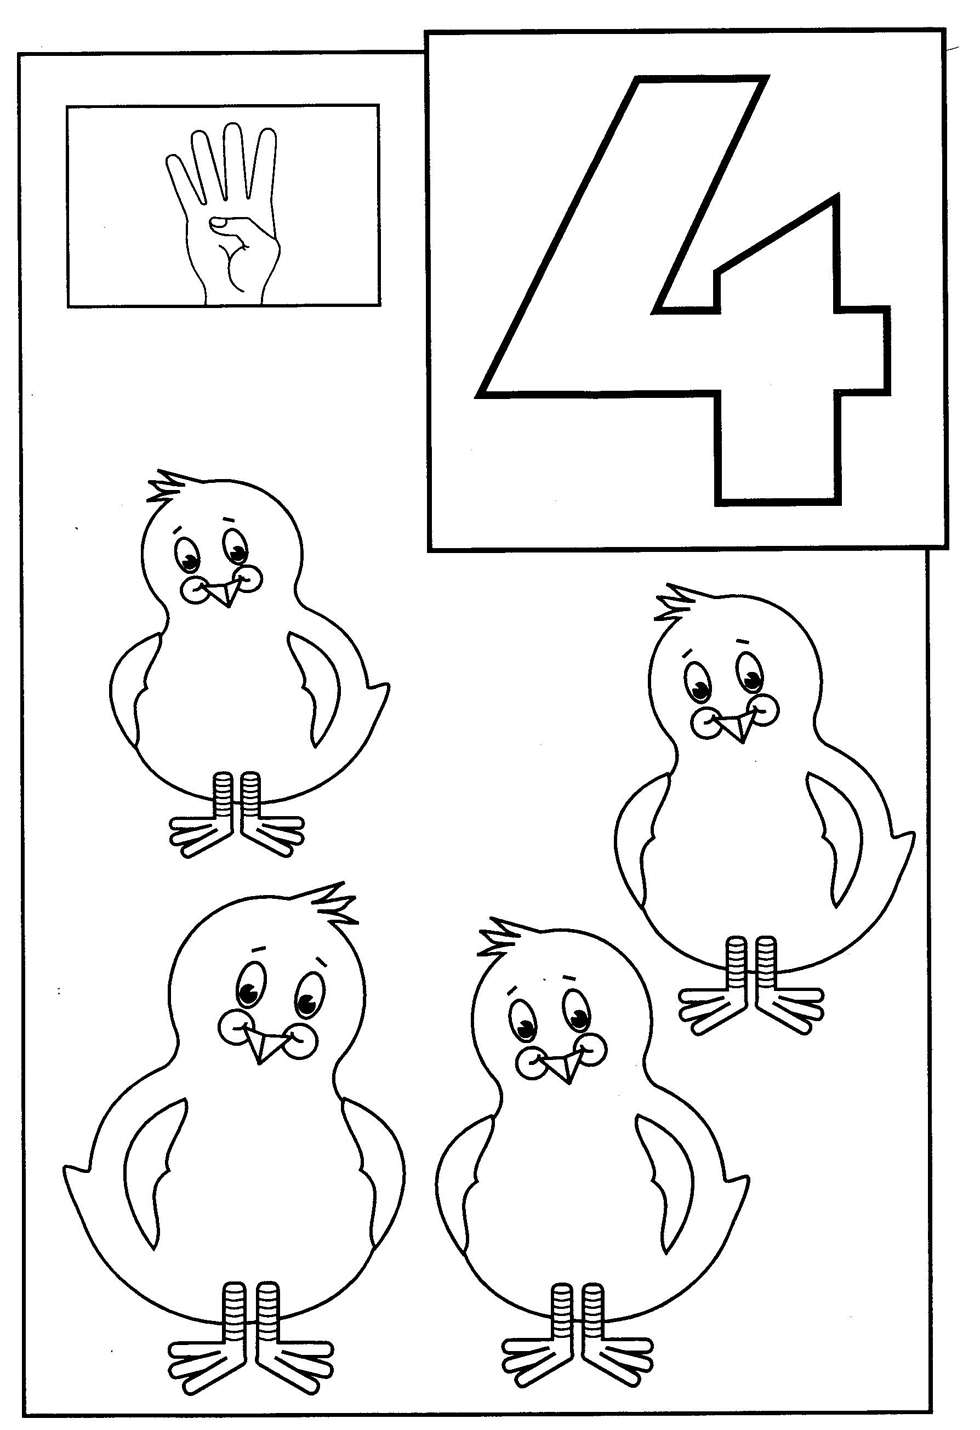 printable coloring pages number 4 - photo#31